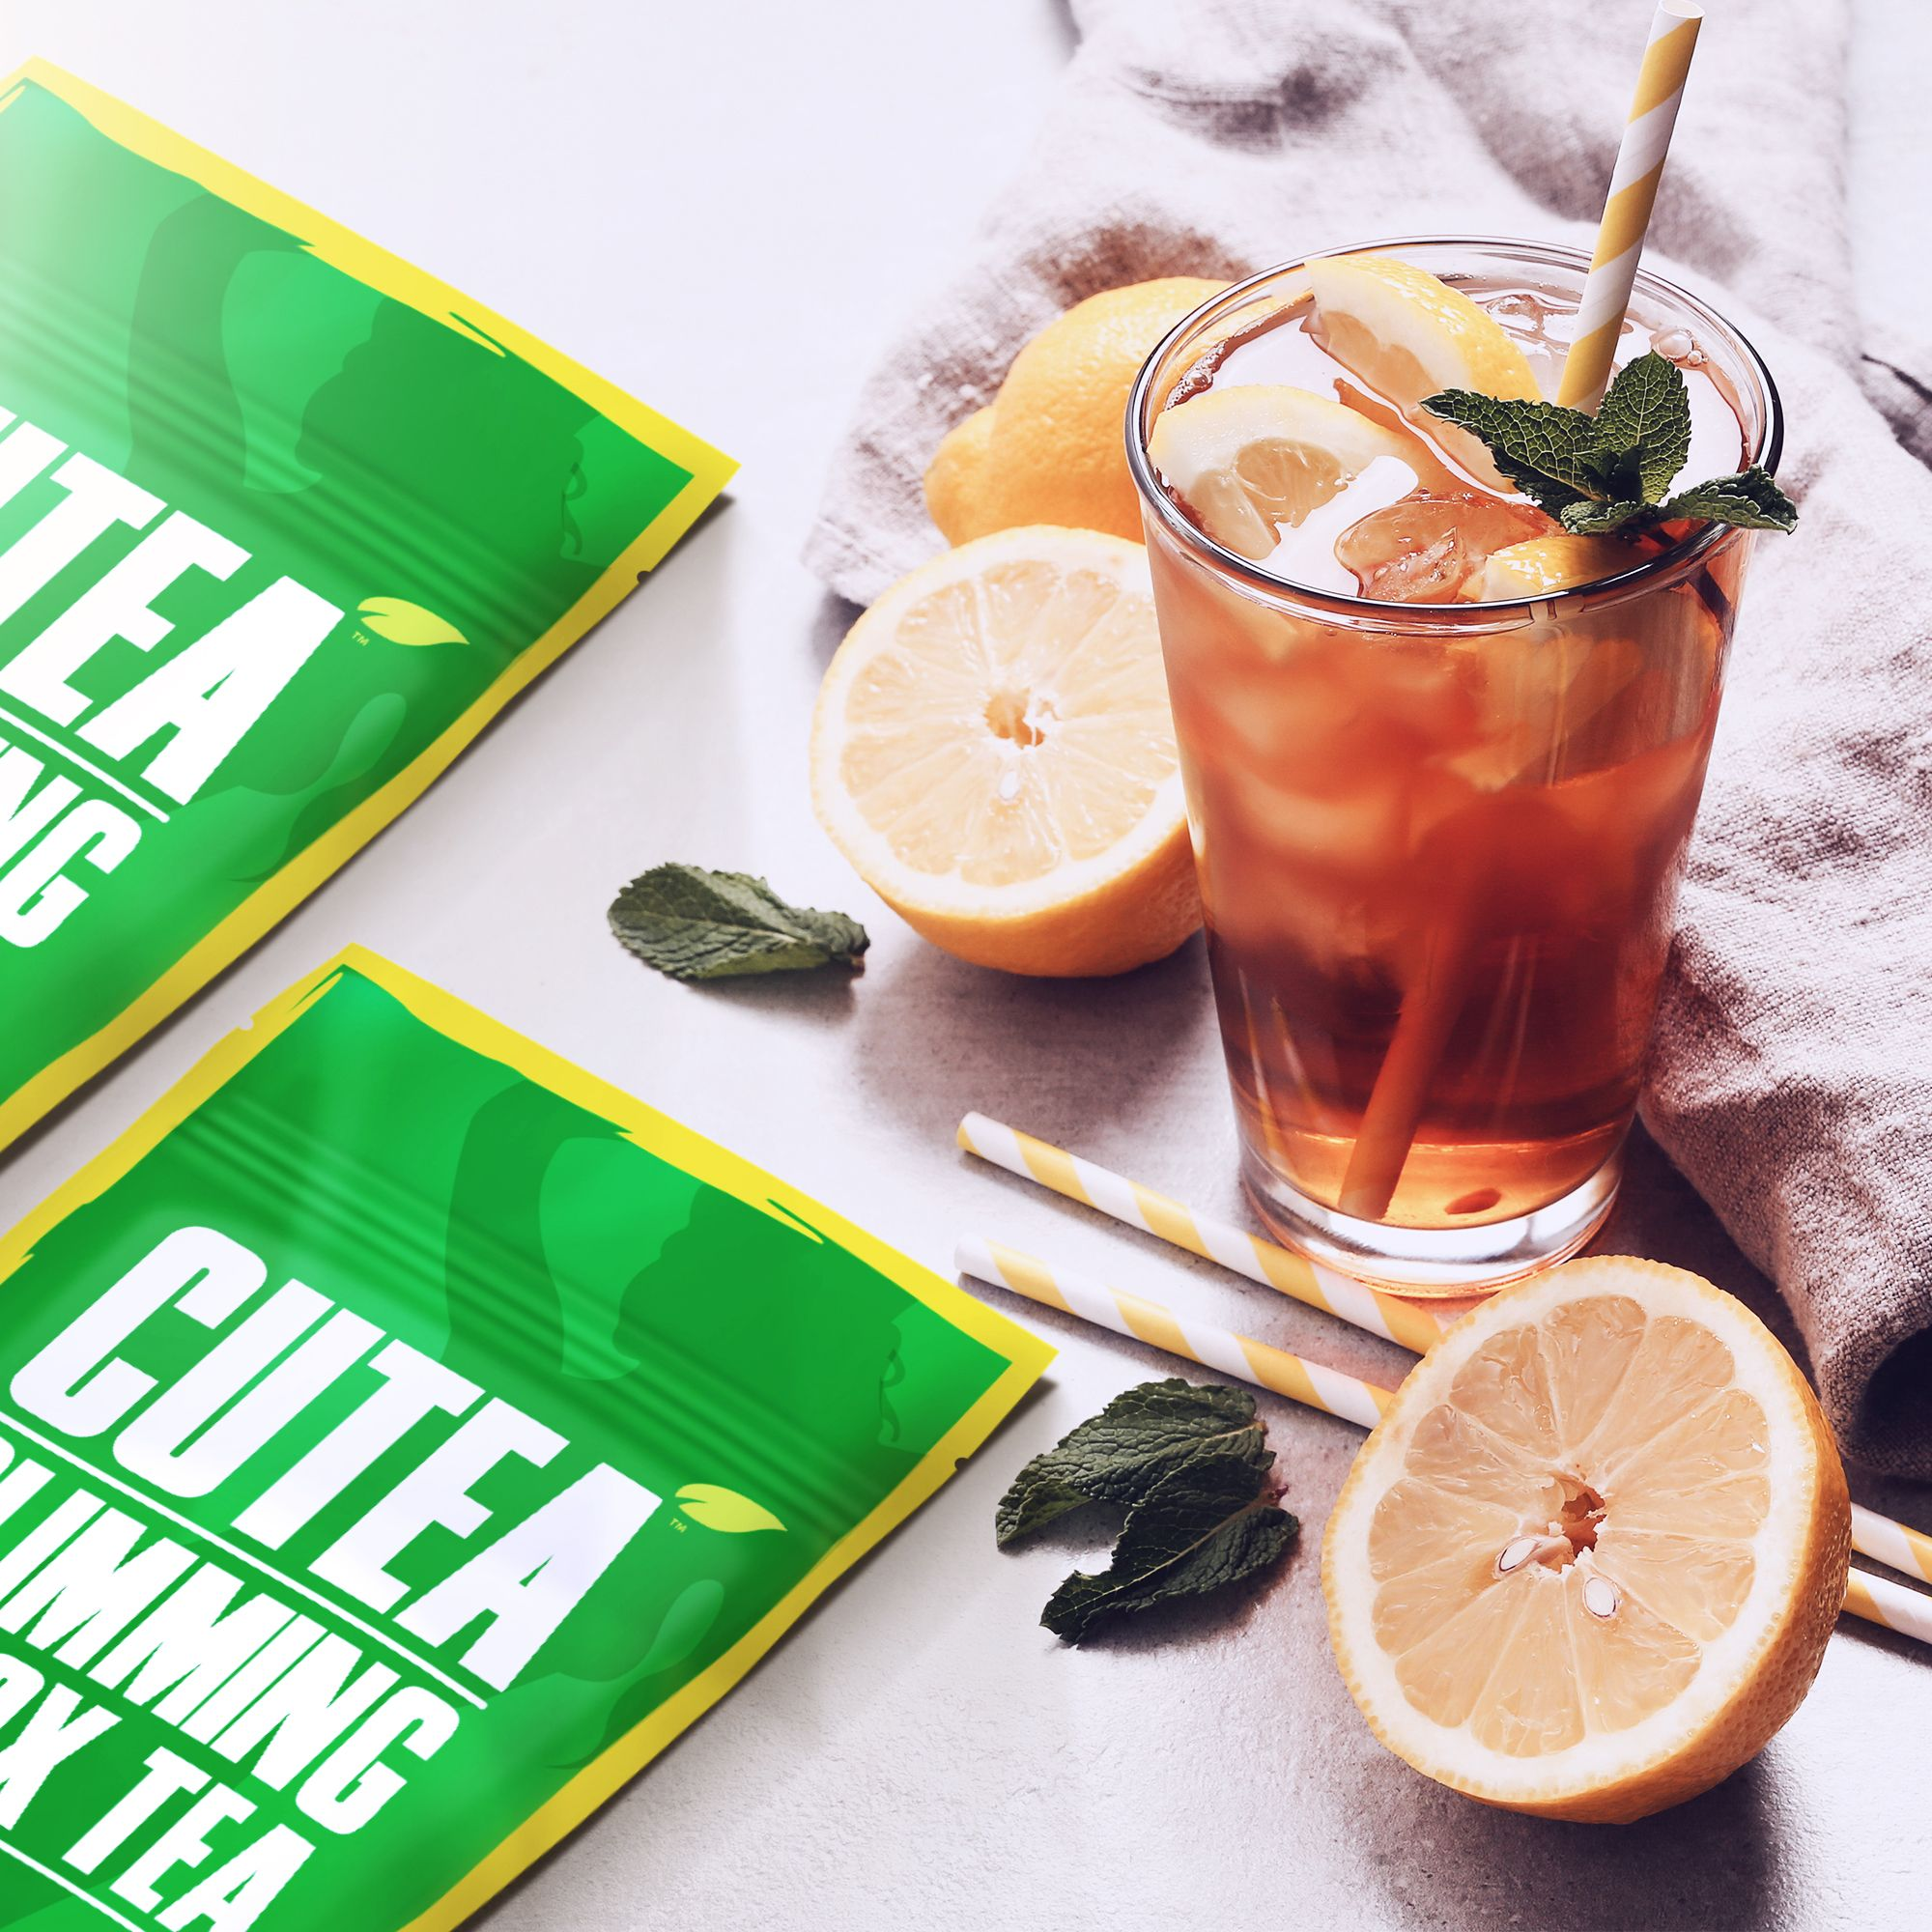 CUTEA Detox Tea not only helps you reduce bloat and fight stubborn fat, but it tastes refreshingly delicious!